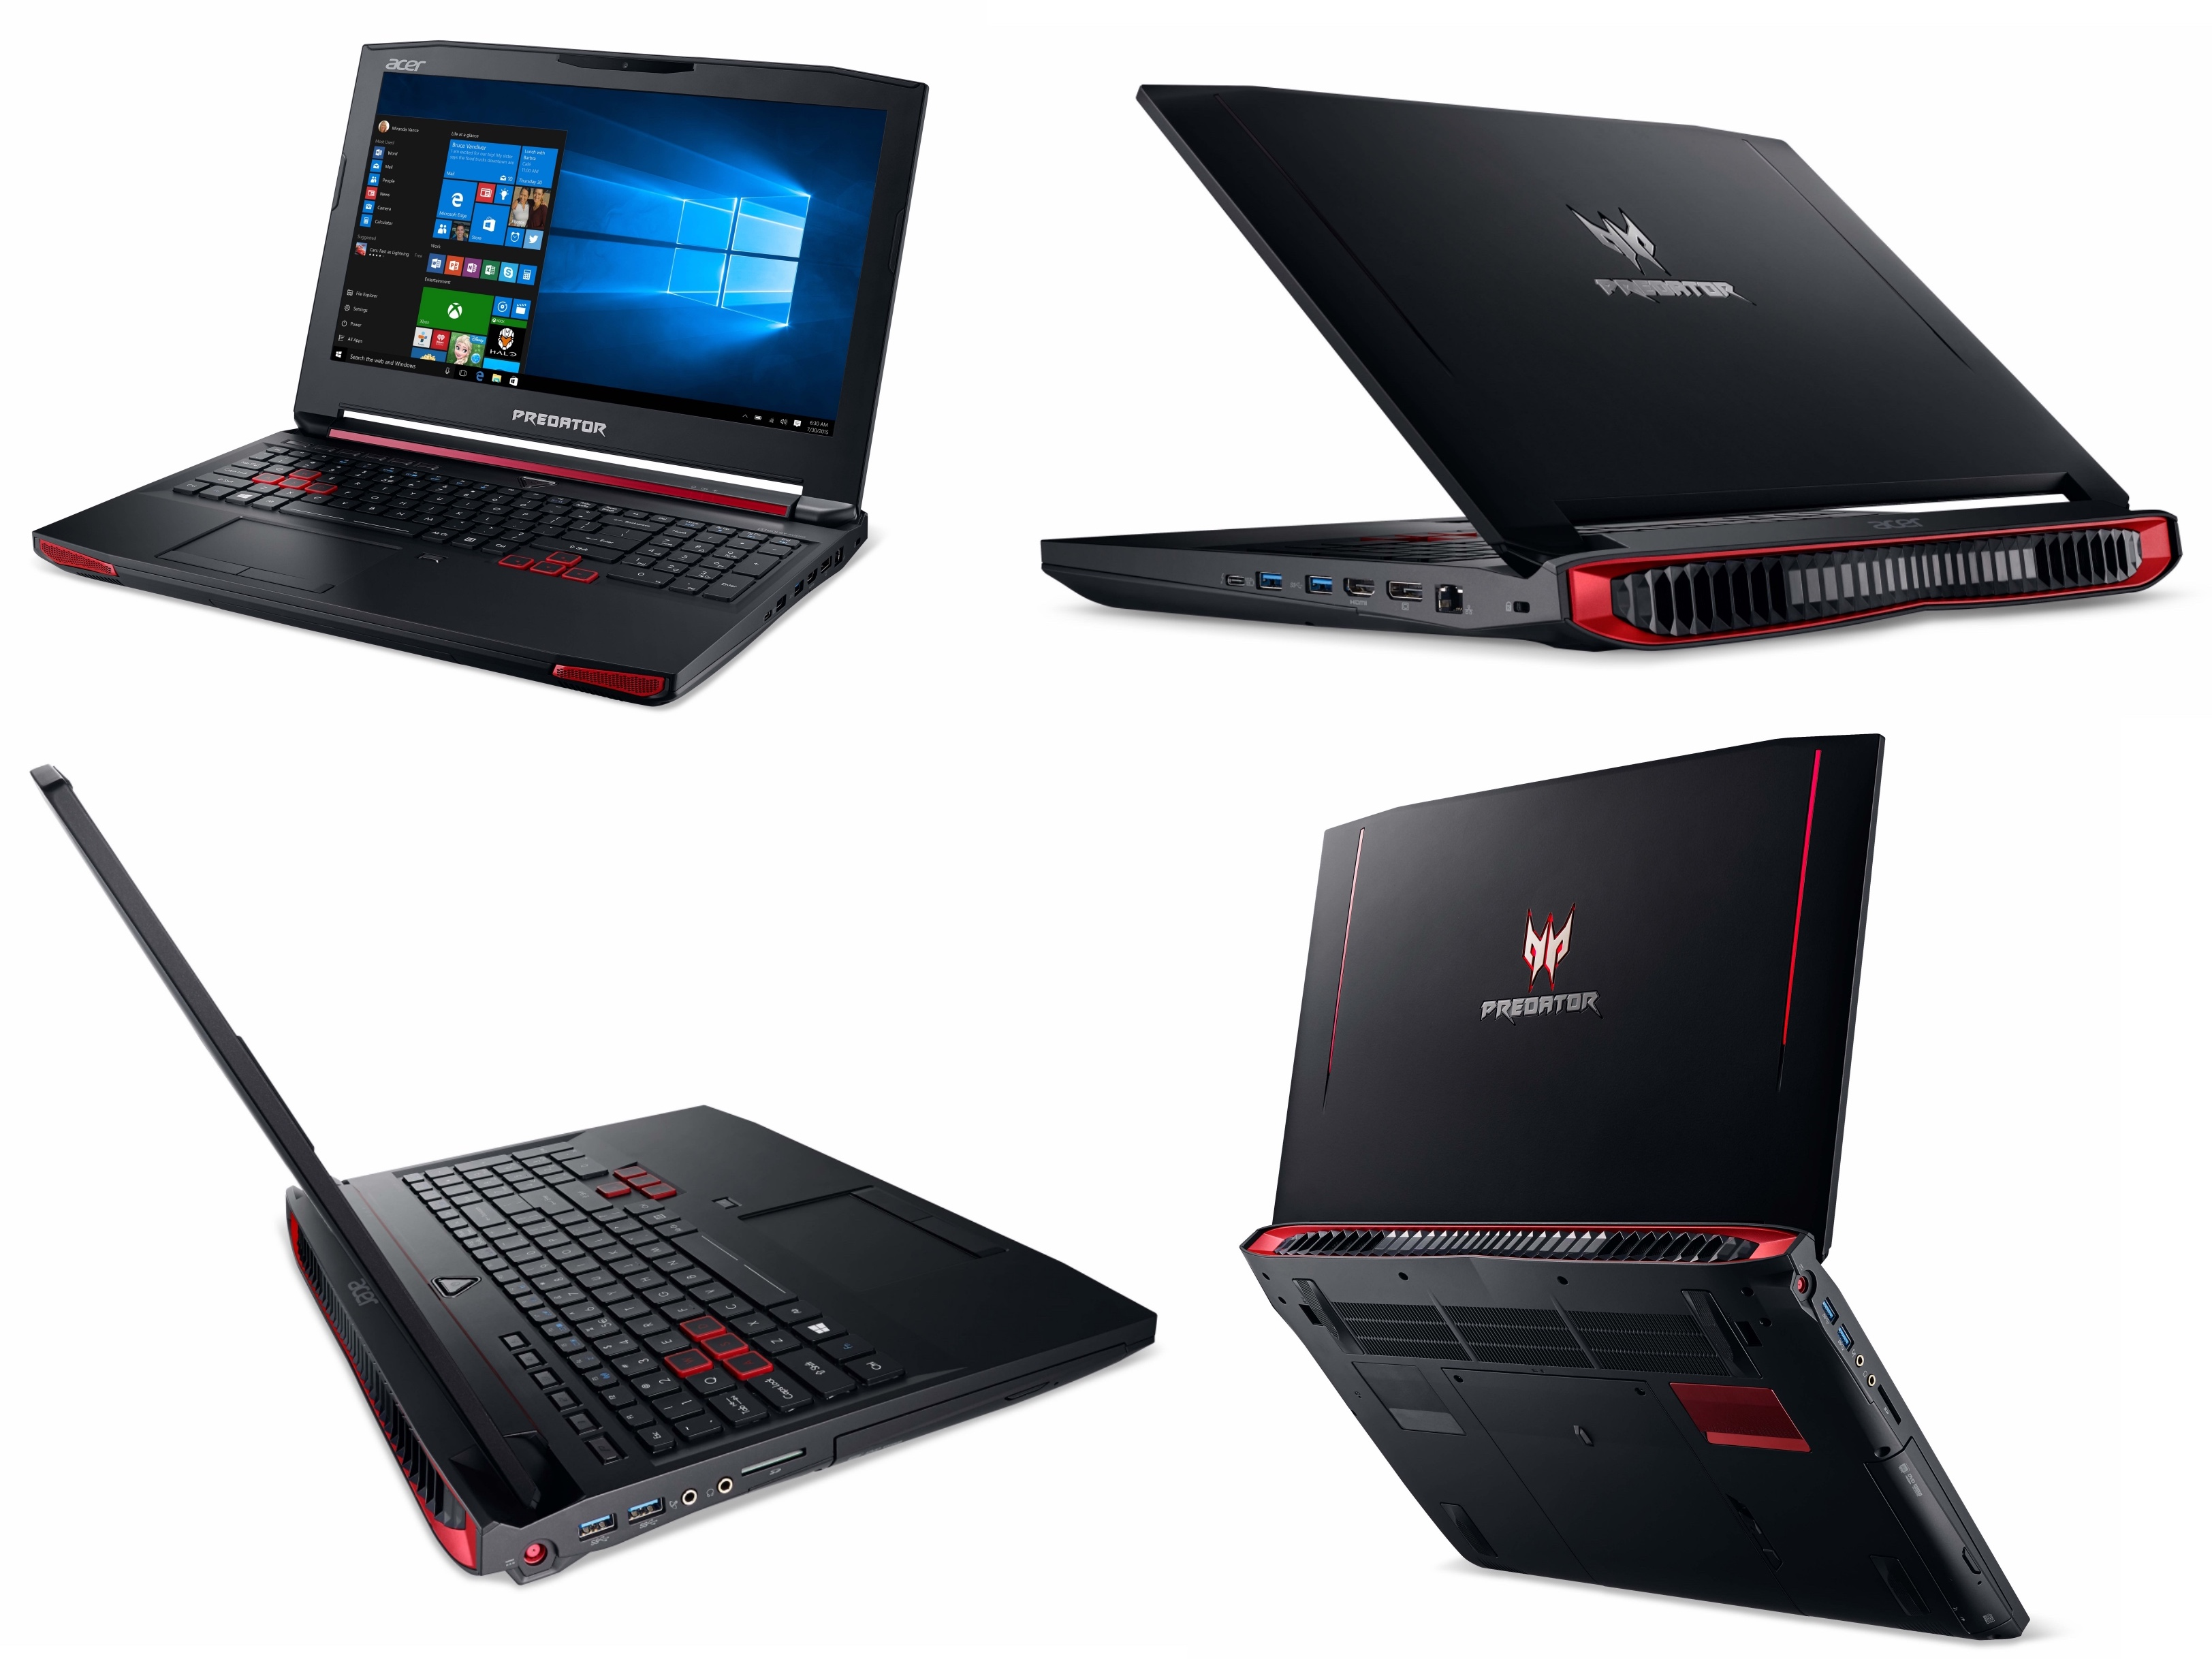 Introducing the Acer Predator 17 notebook